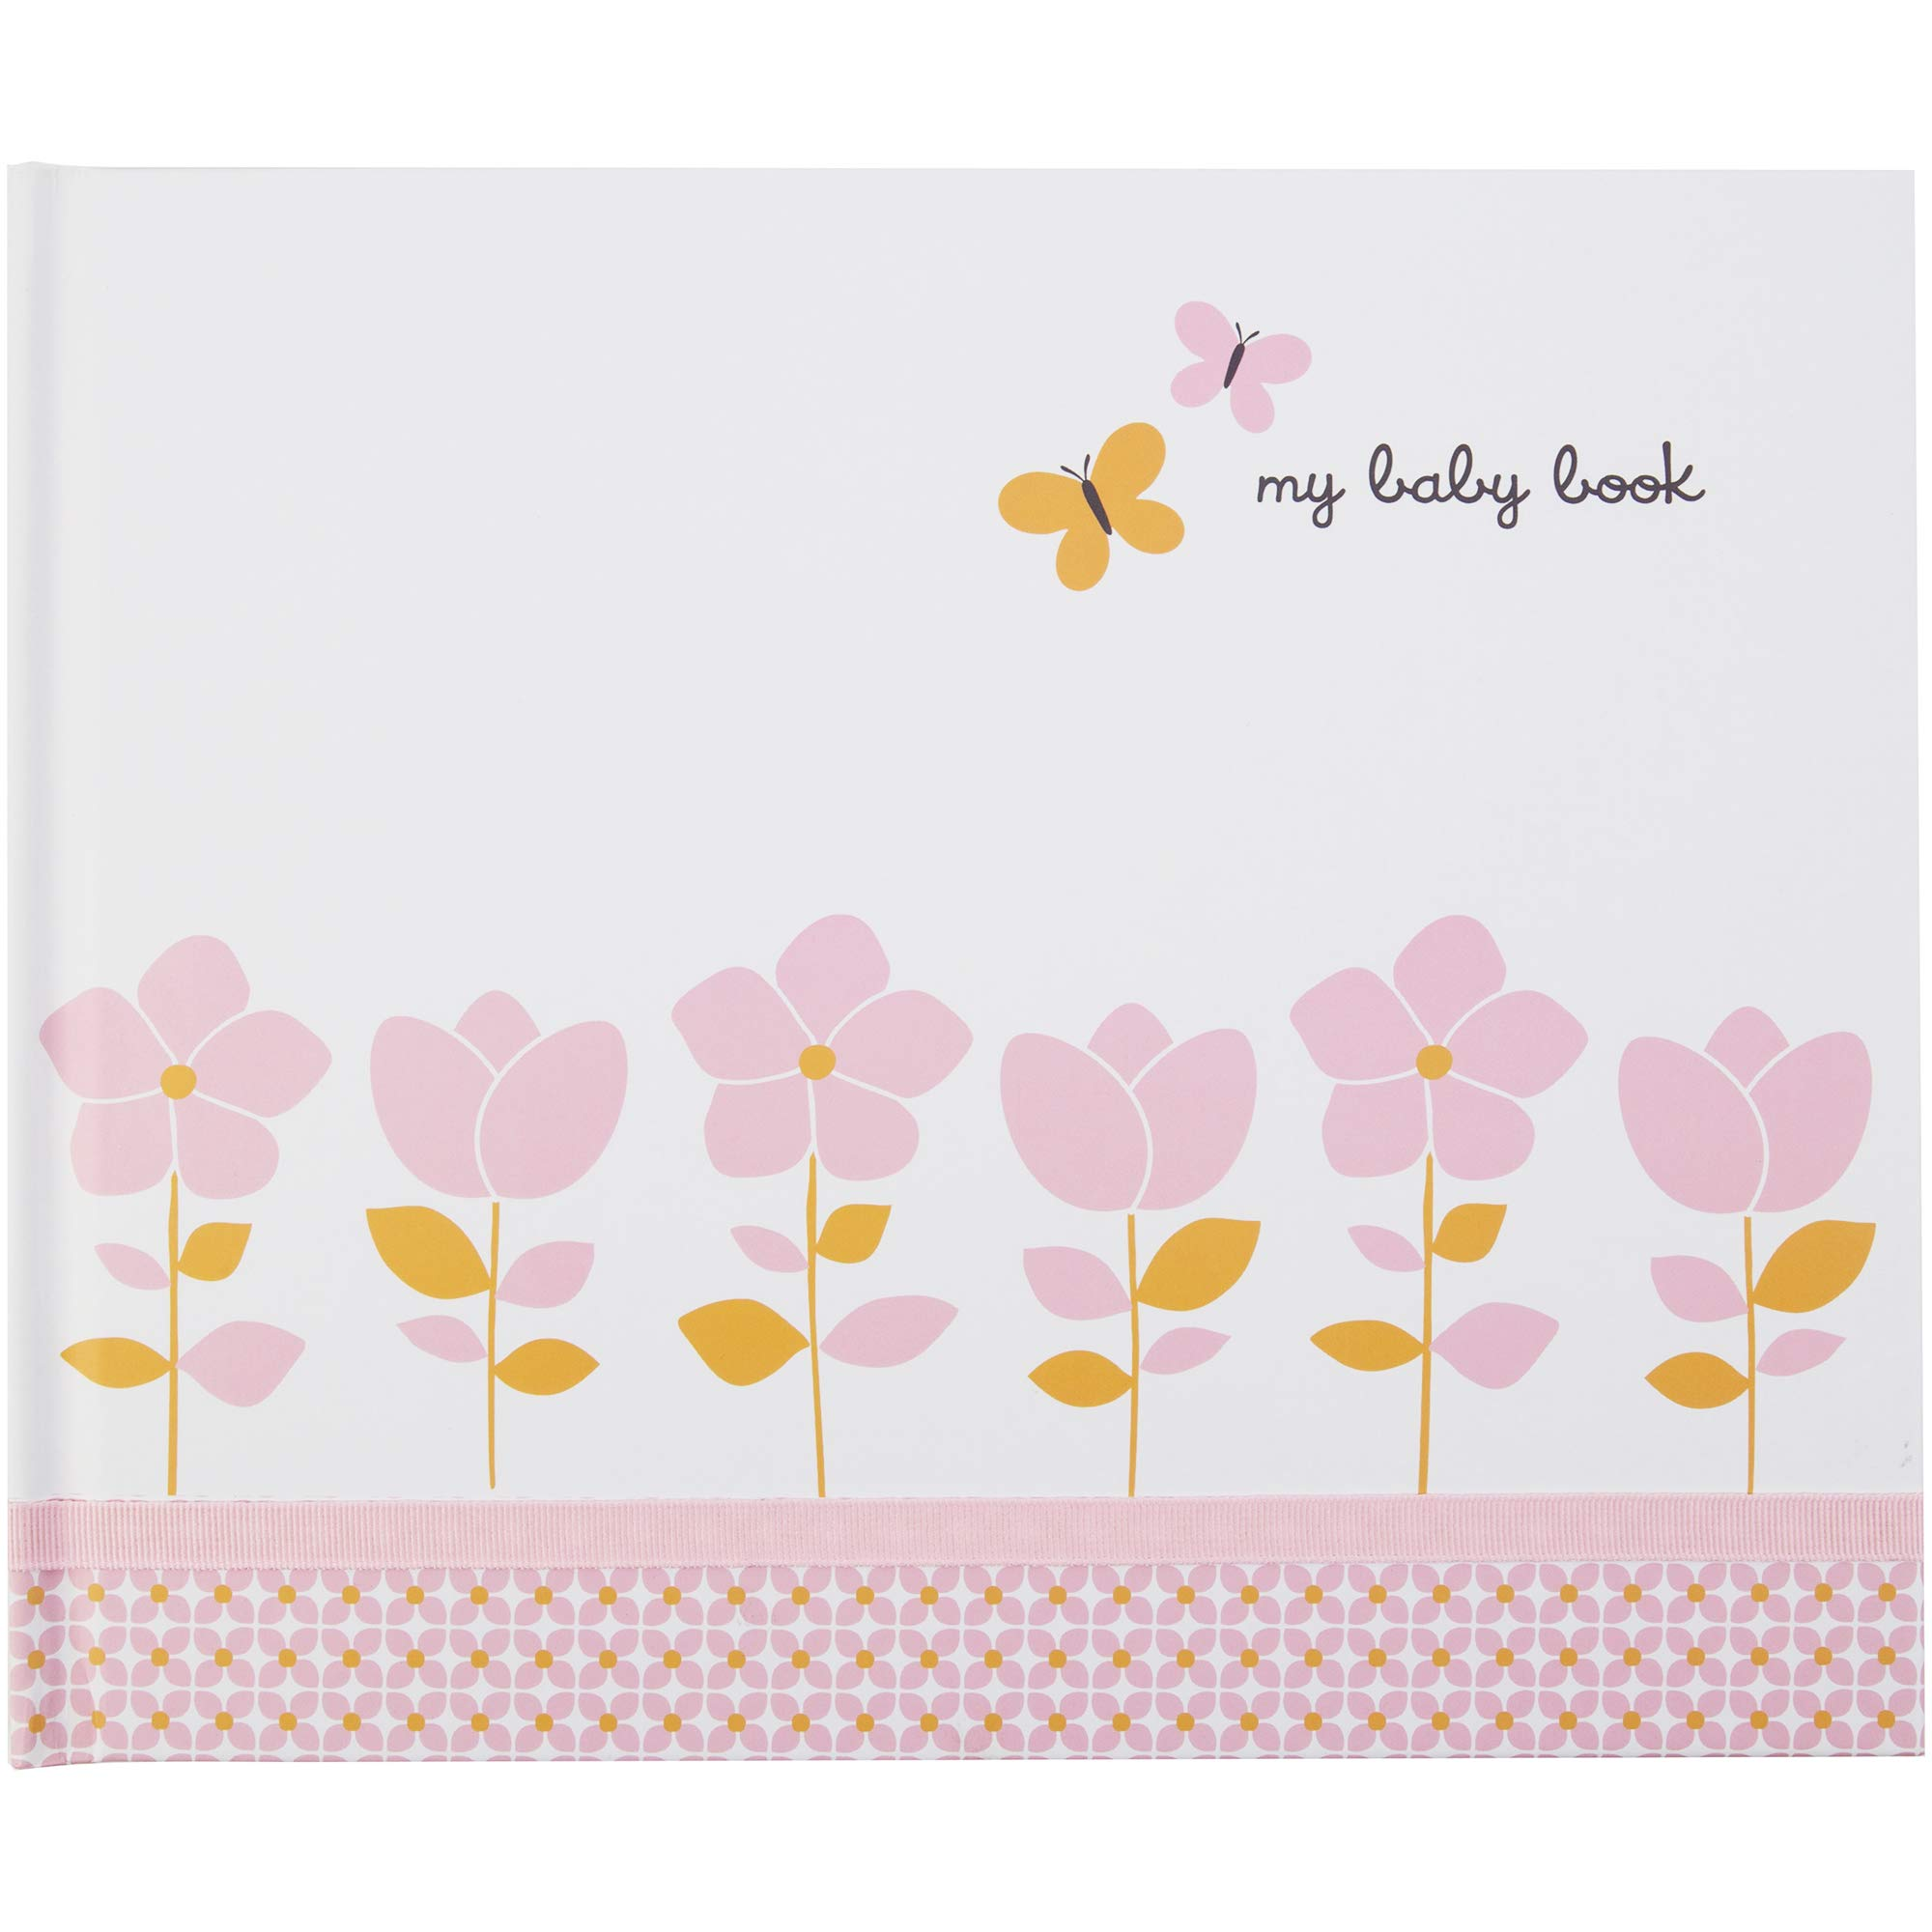 C.R. Gibson Baby Memory Book For First 5 Years Carter's Blossom 72 Pages Best Baby Books For Girls Boys Infants